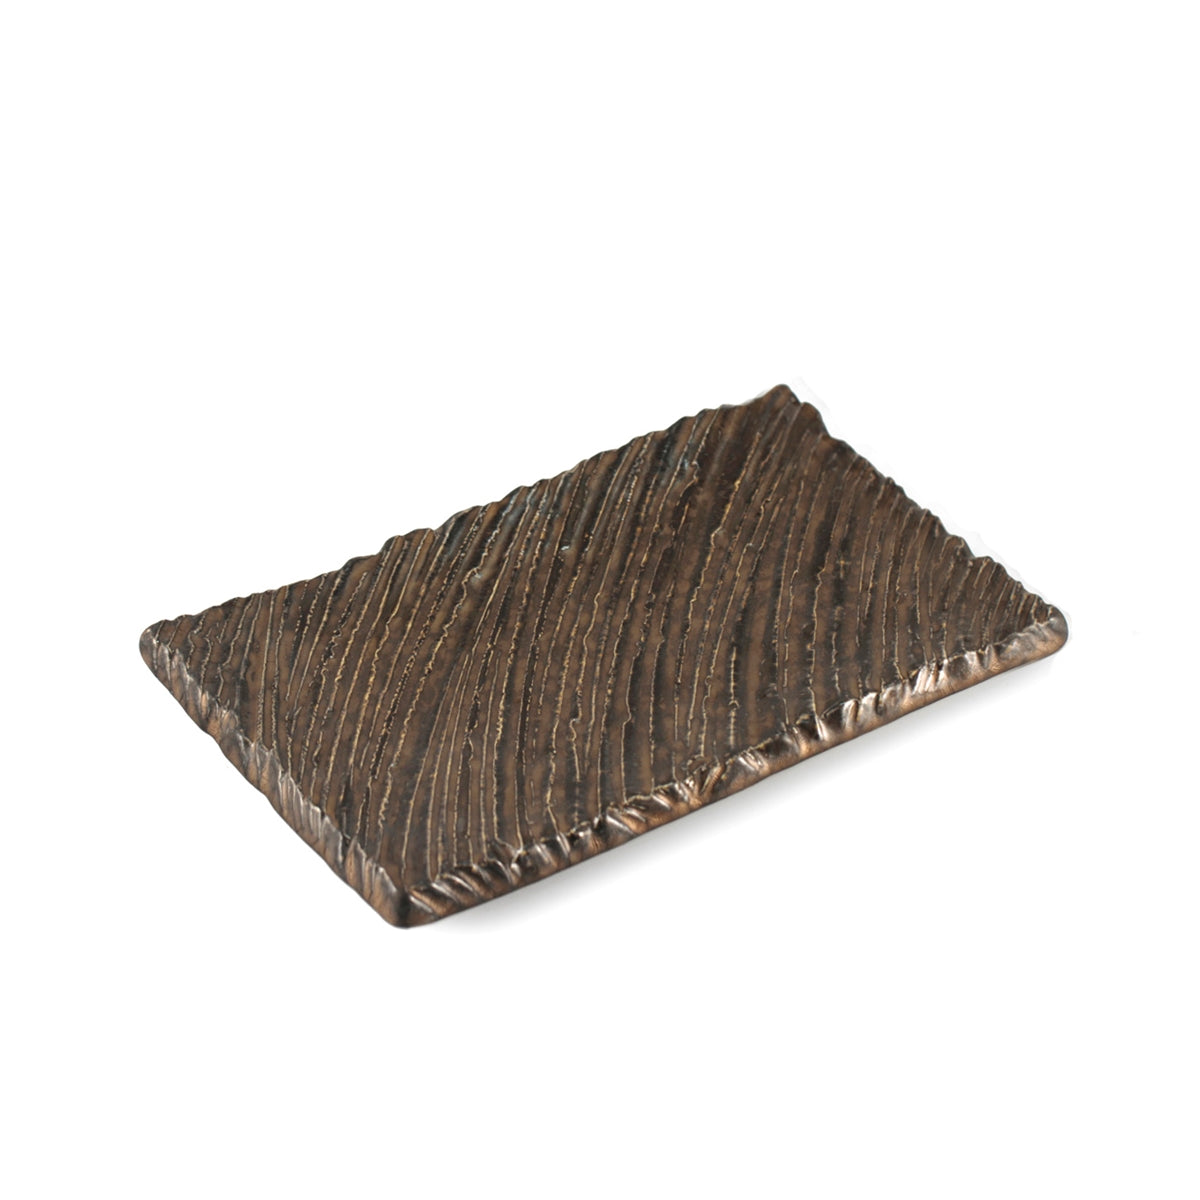 "Kinkessho Bronze Textured Rectangular Plate 6.65"" x 5.12"""